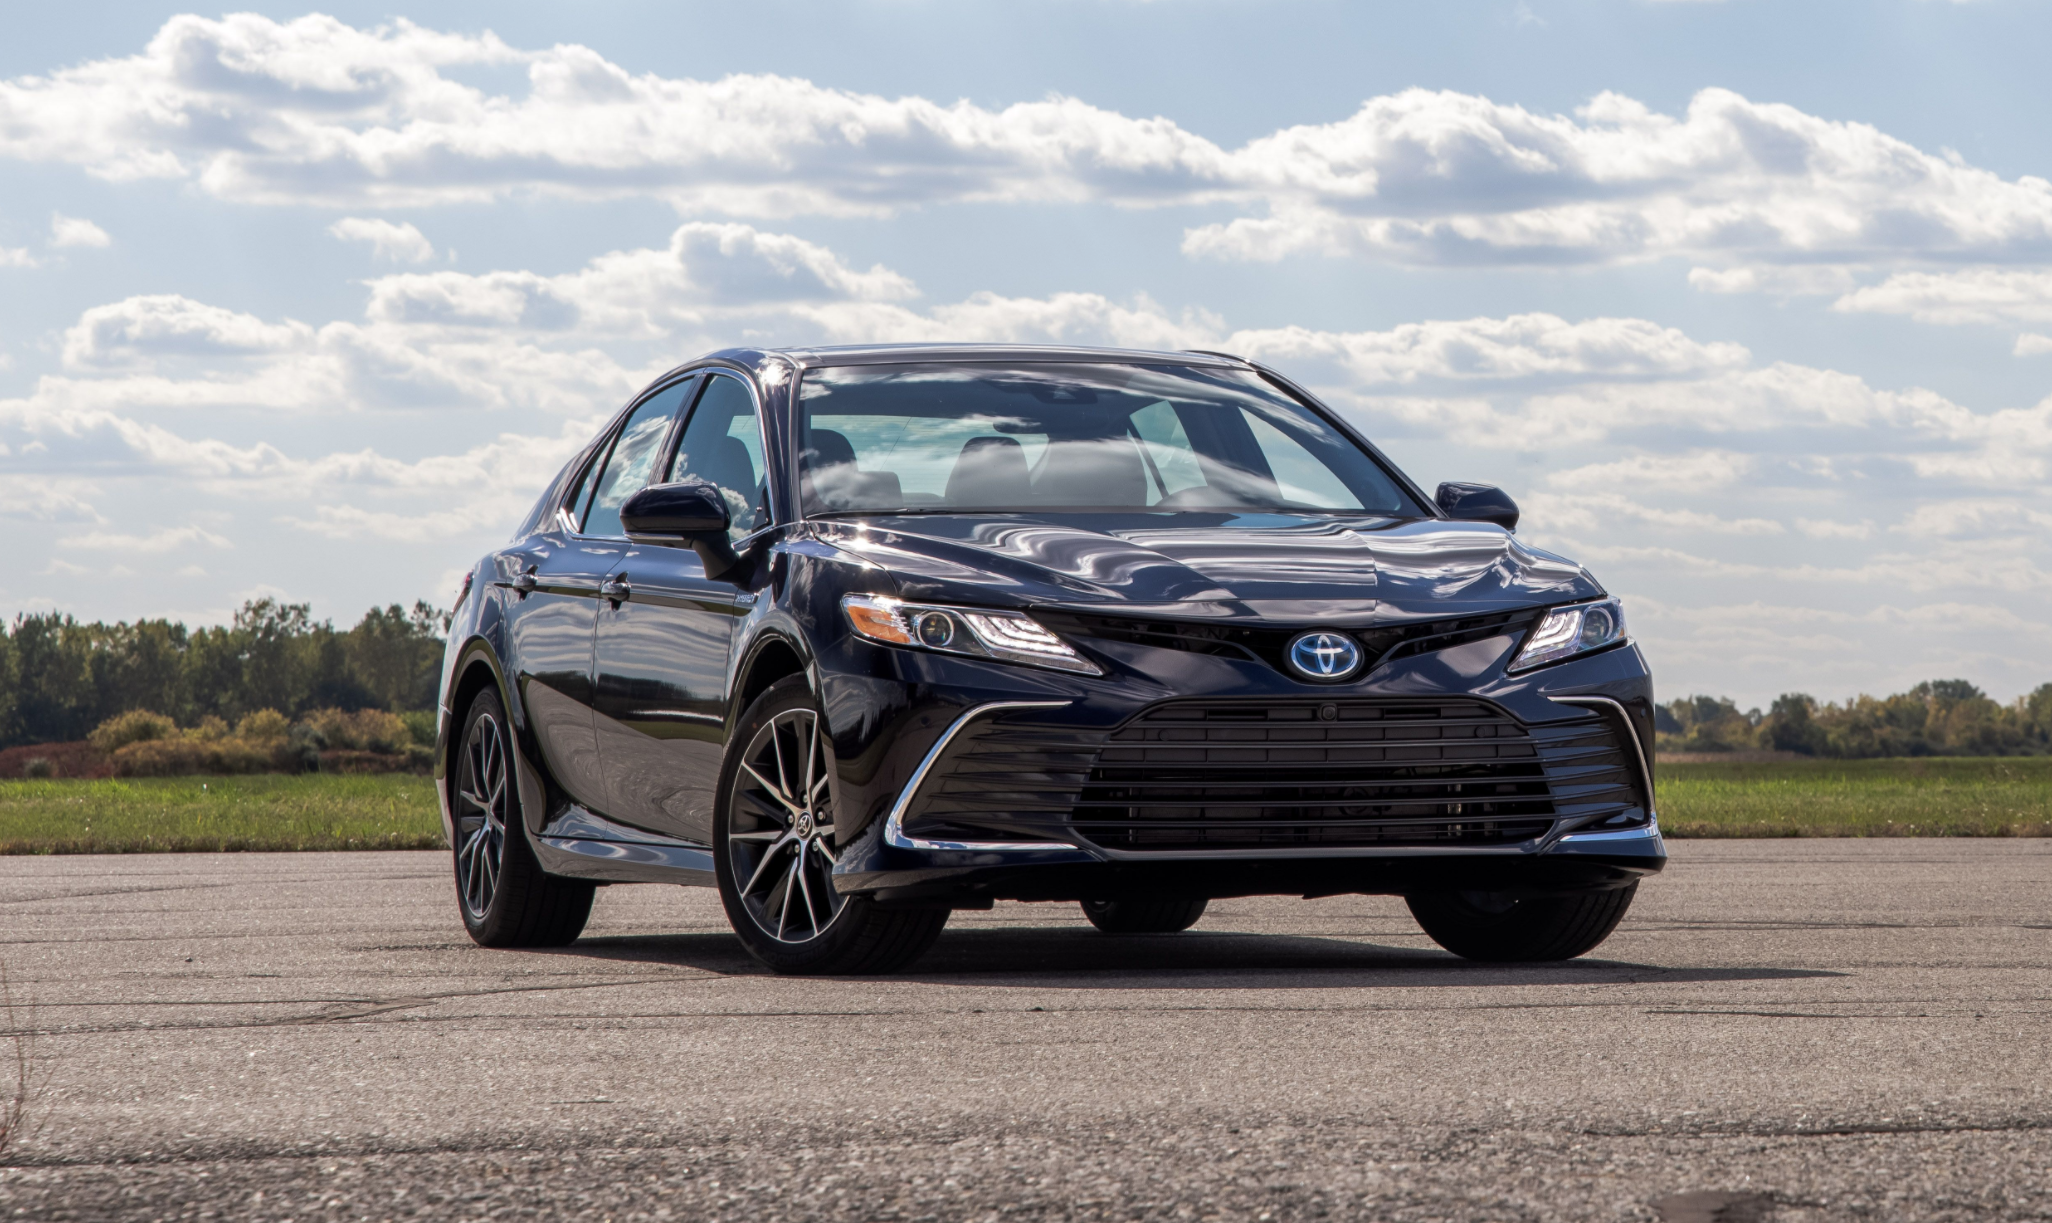 5 Toyota Camry Review, Pricing, and Specs